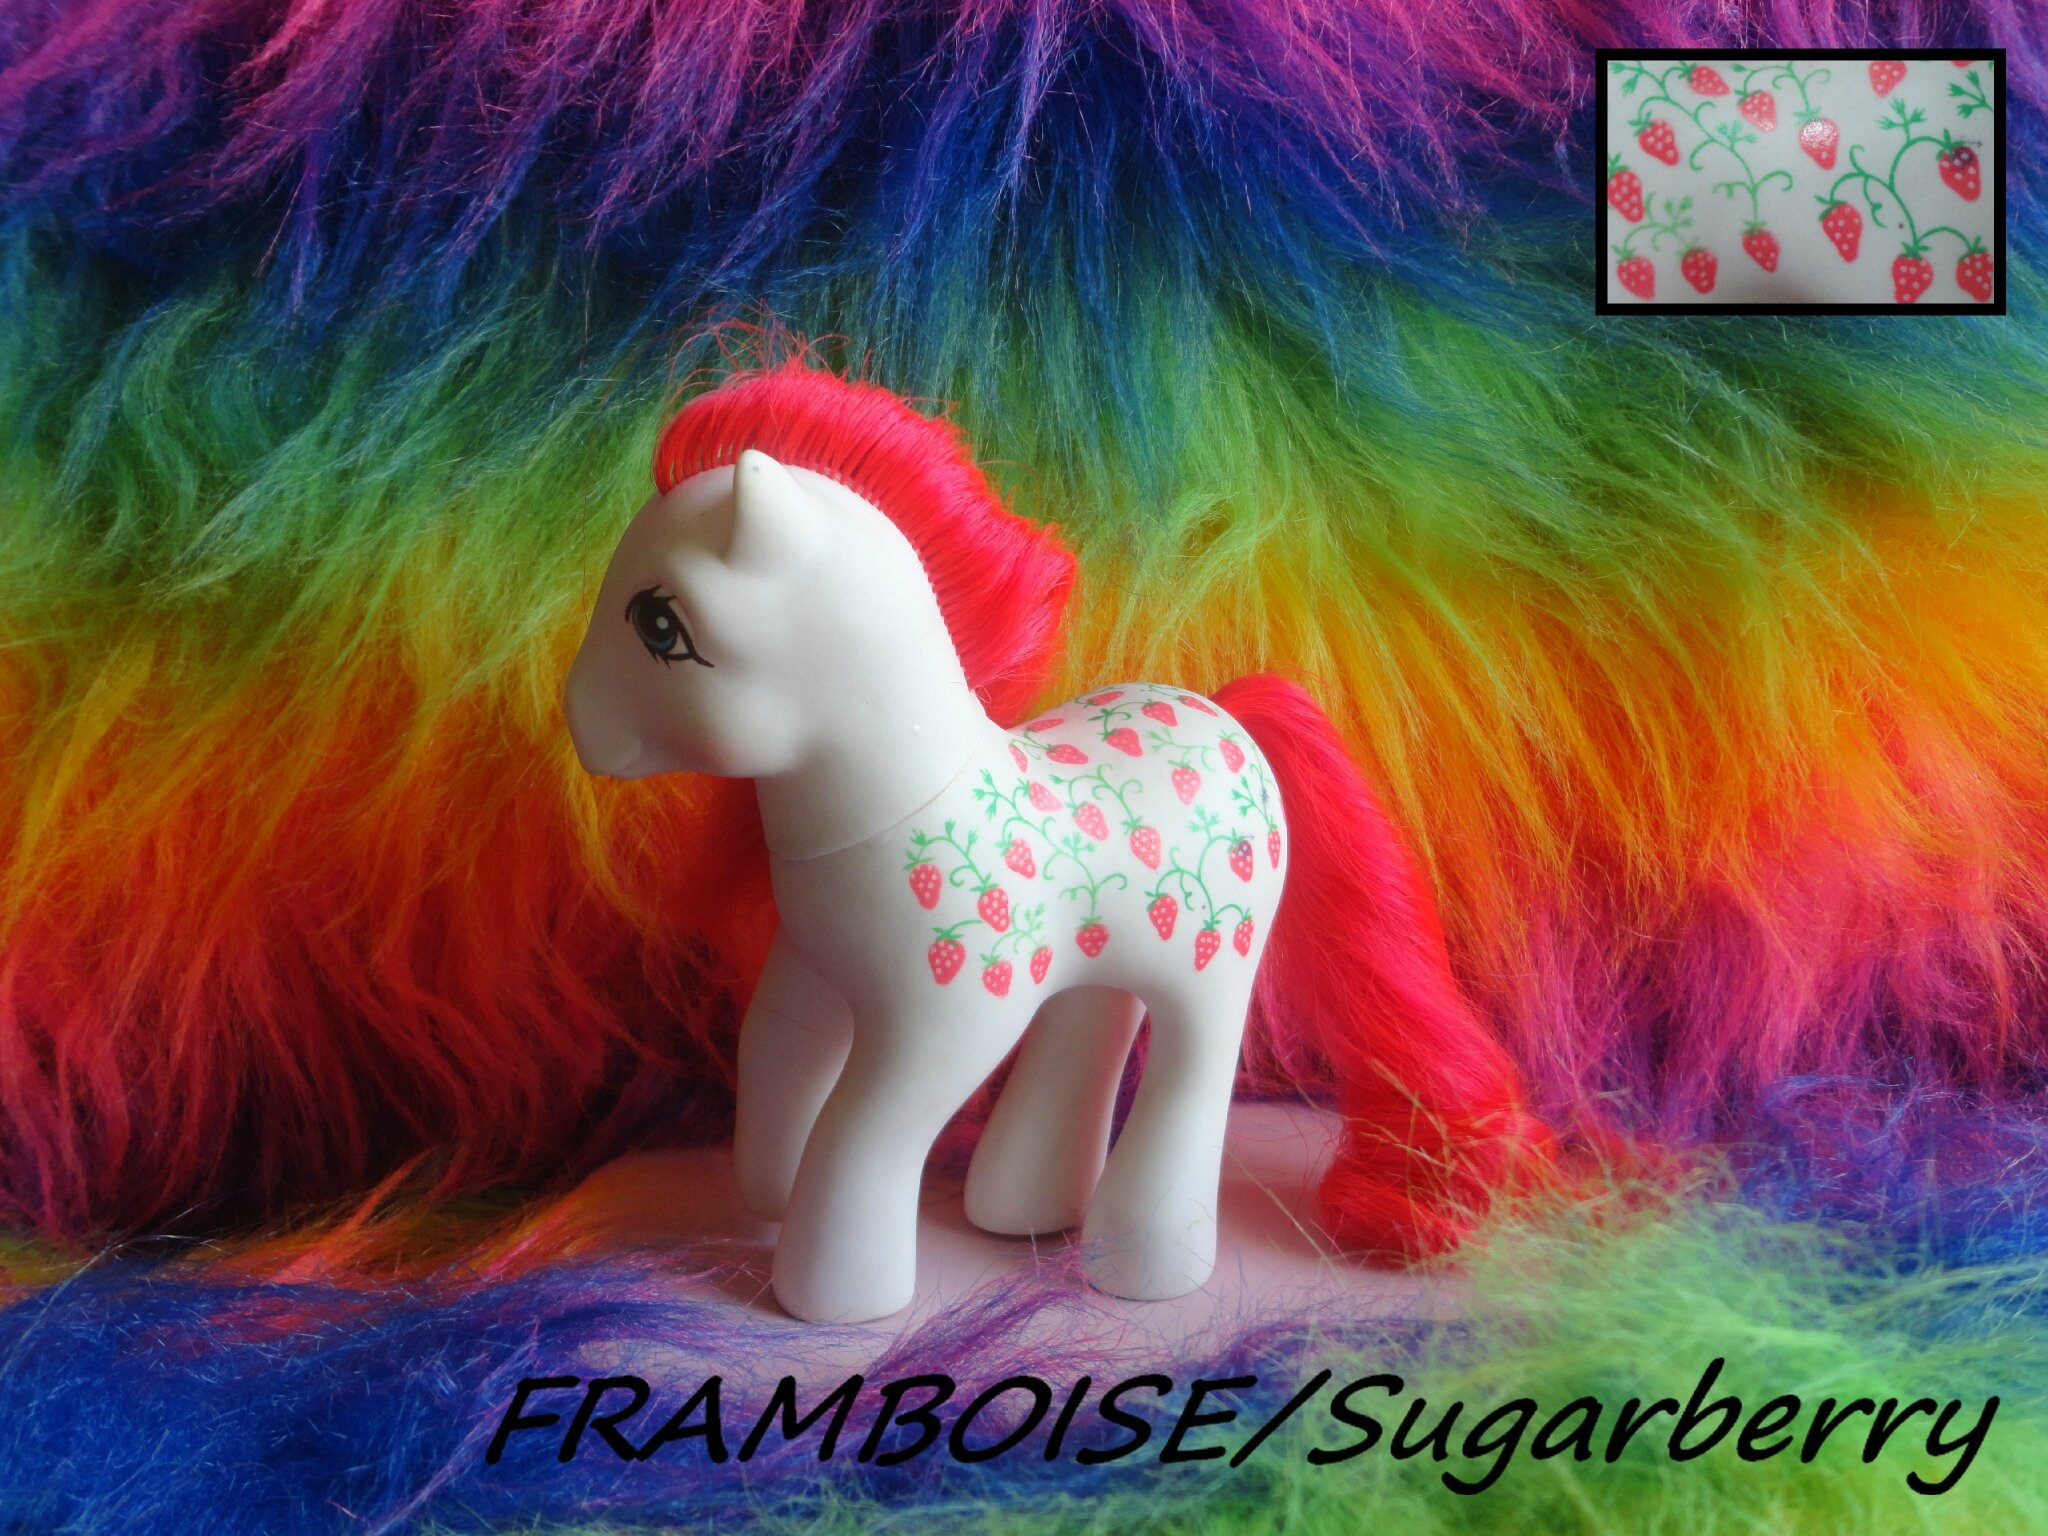 FRAMBOISE (Sugarberry)